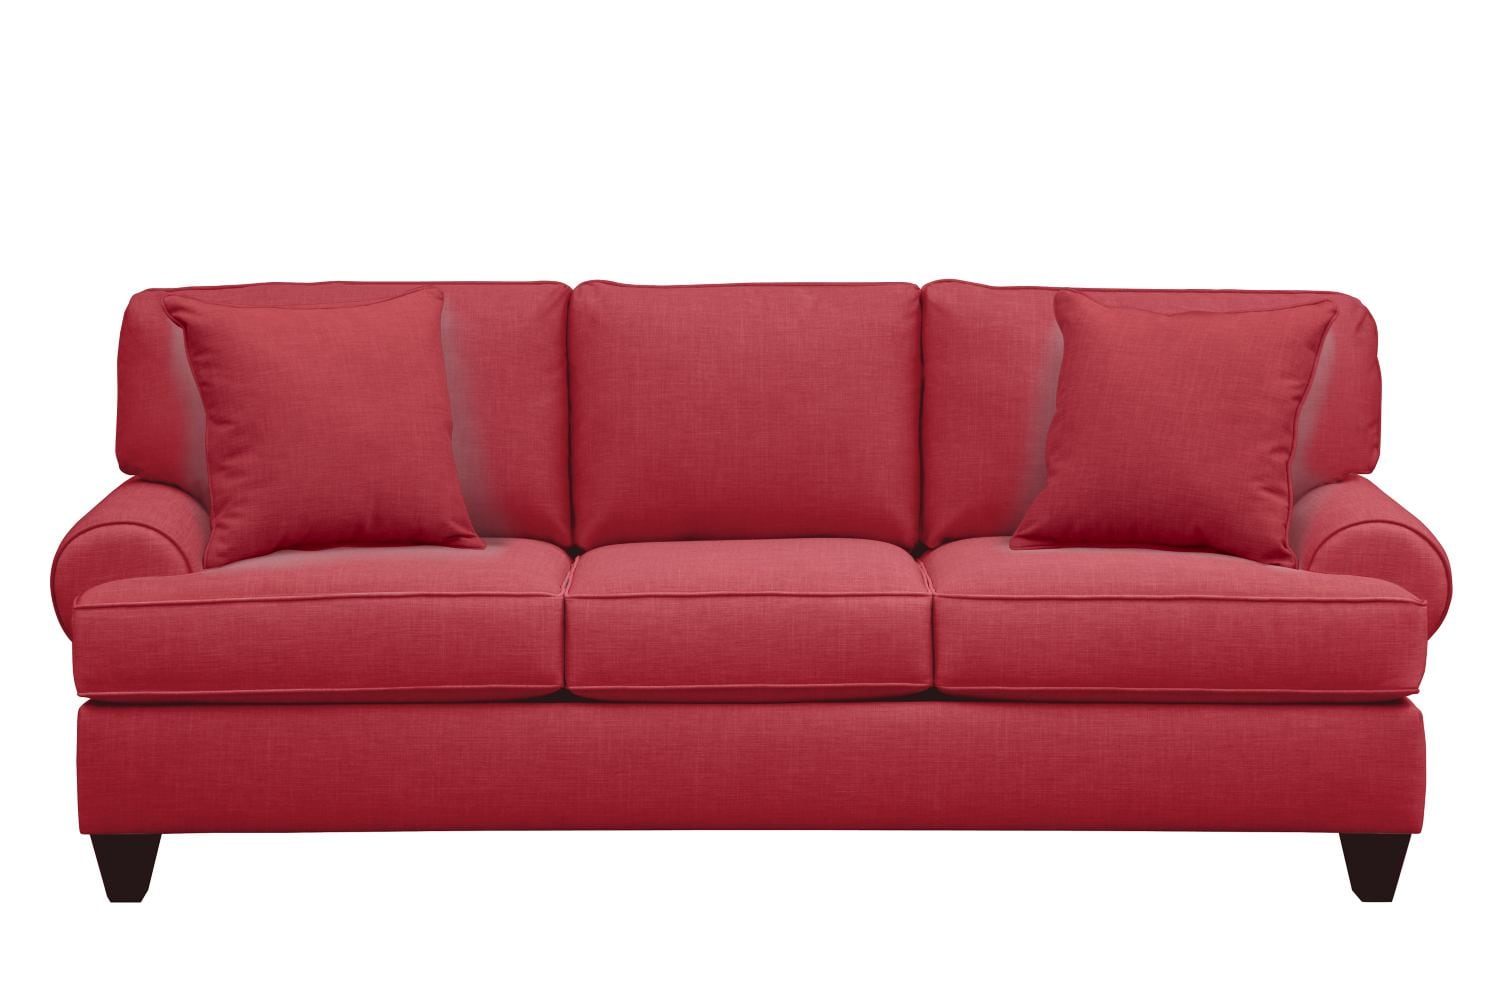 "Living Room Furniture - Bailey Roll Arm Sofa 91"" Oakley III Tomato w/ Oakley III Tomato Pillow"